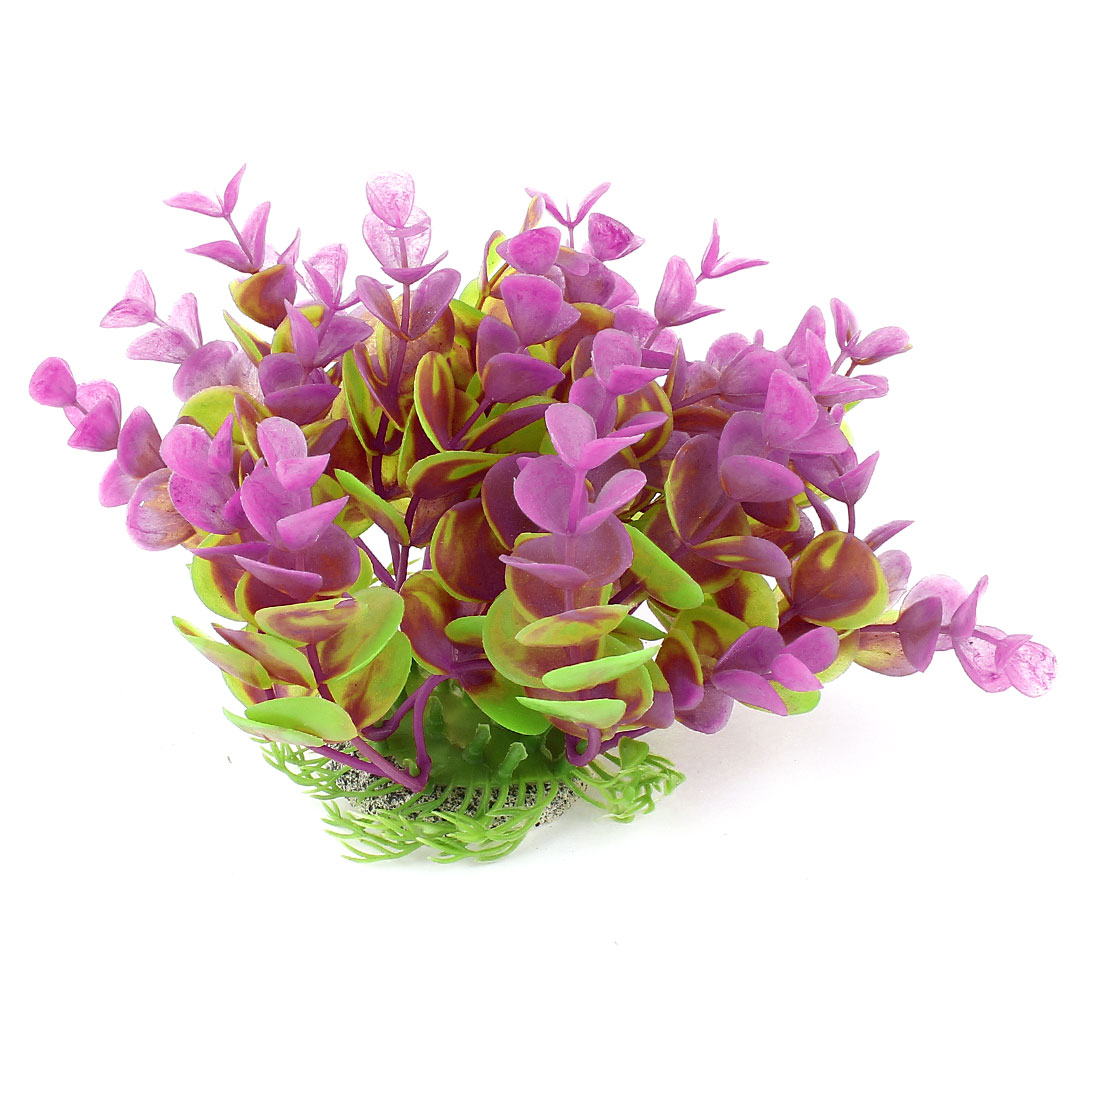 11cm High Green Fuchsia Artificial Flower Grass Water Plant Decor for Aquarium